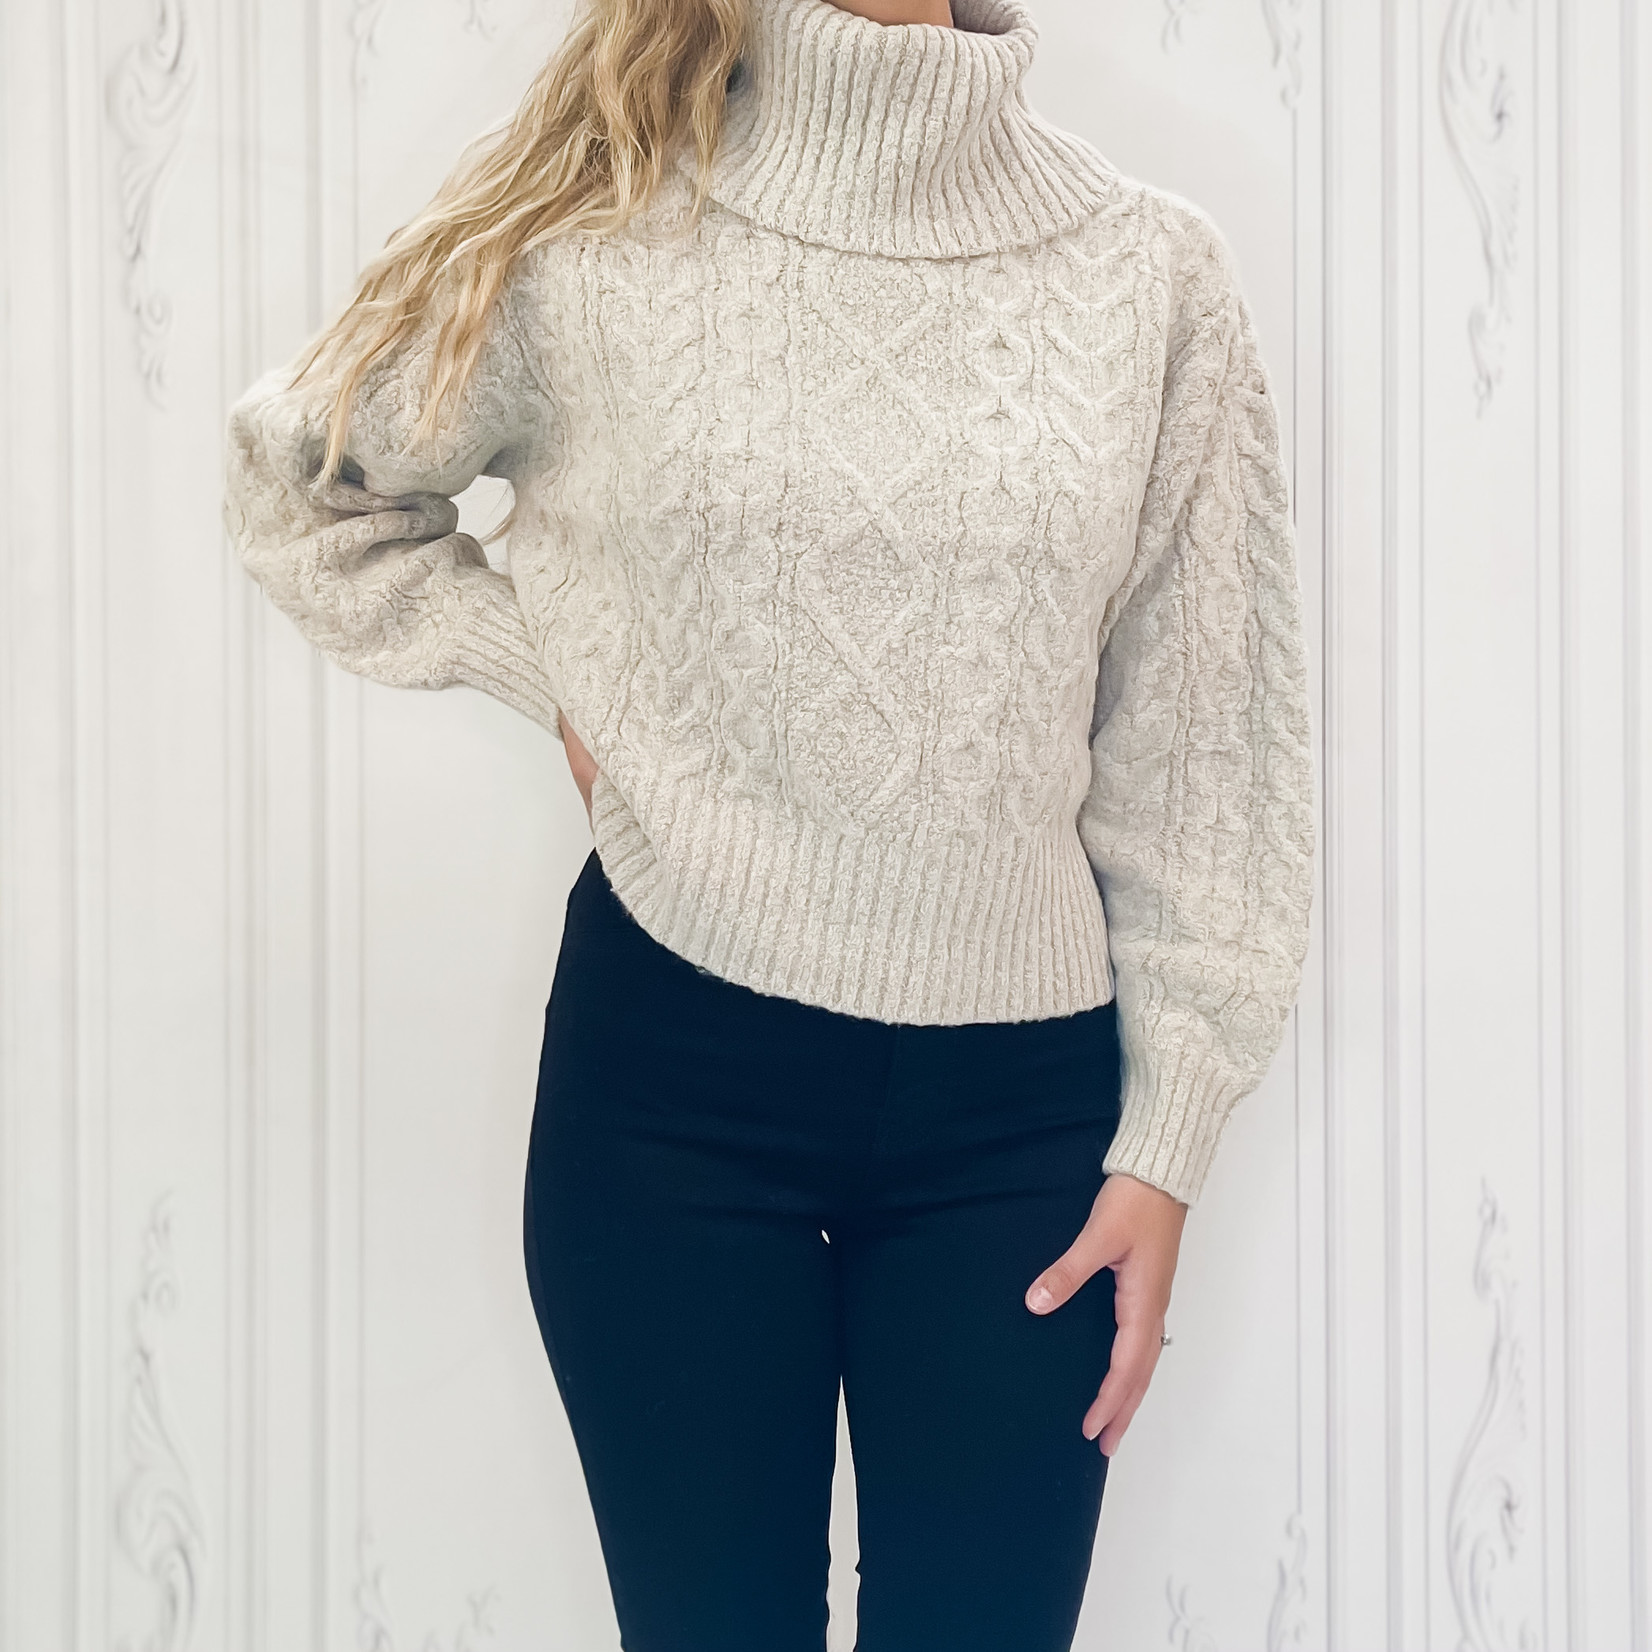 rd style - cable knit turtle neck sweater